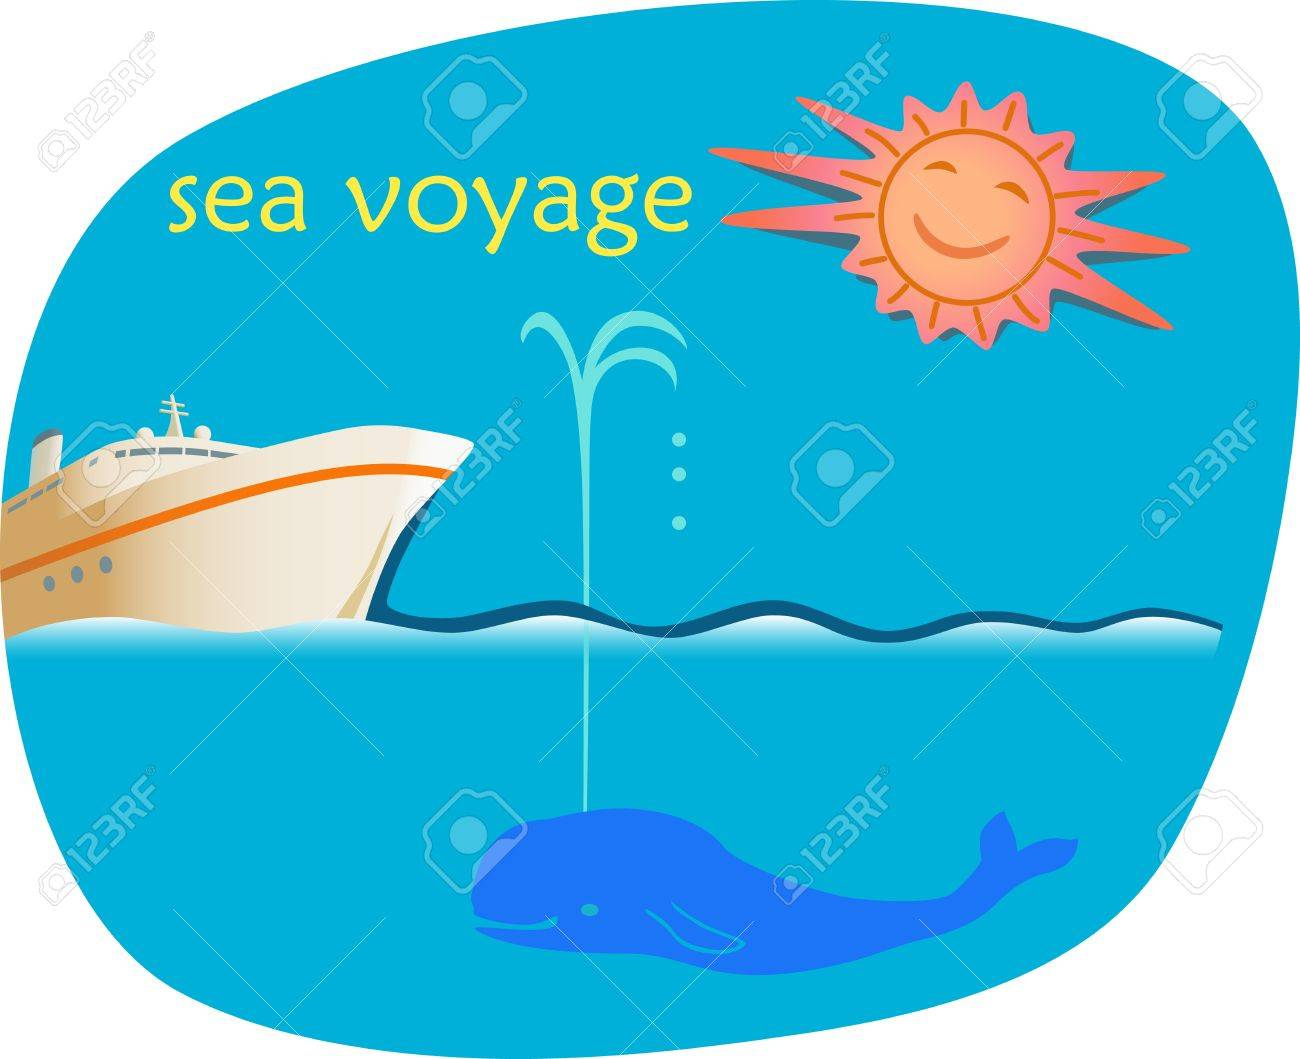 Sea Voyage. Advertising  template of sea cruise offer. Stock Vector - 18700111